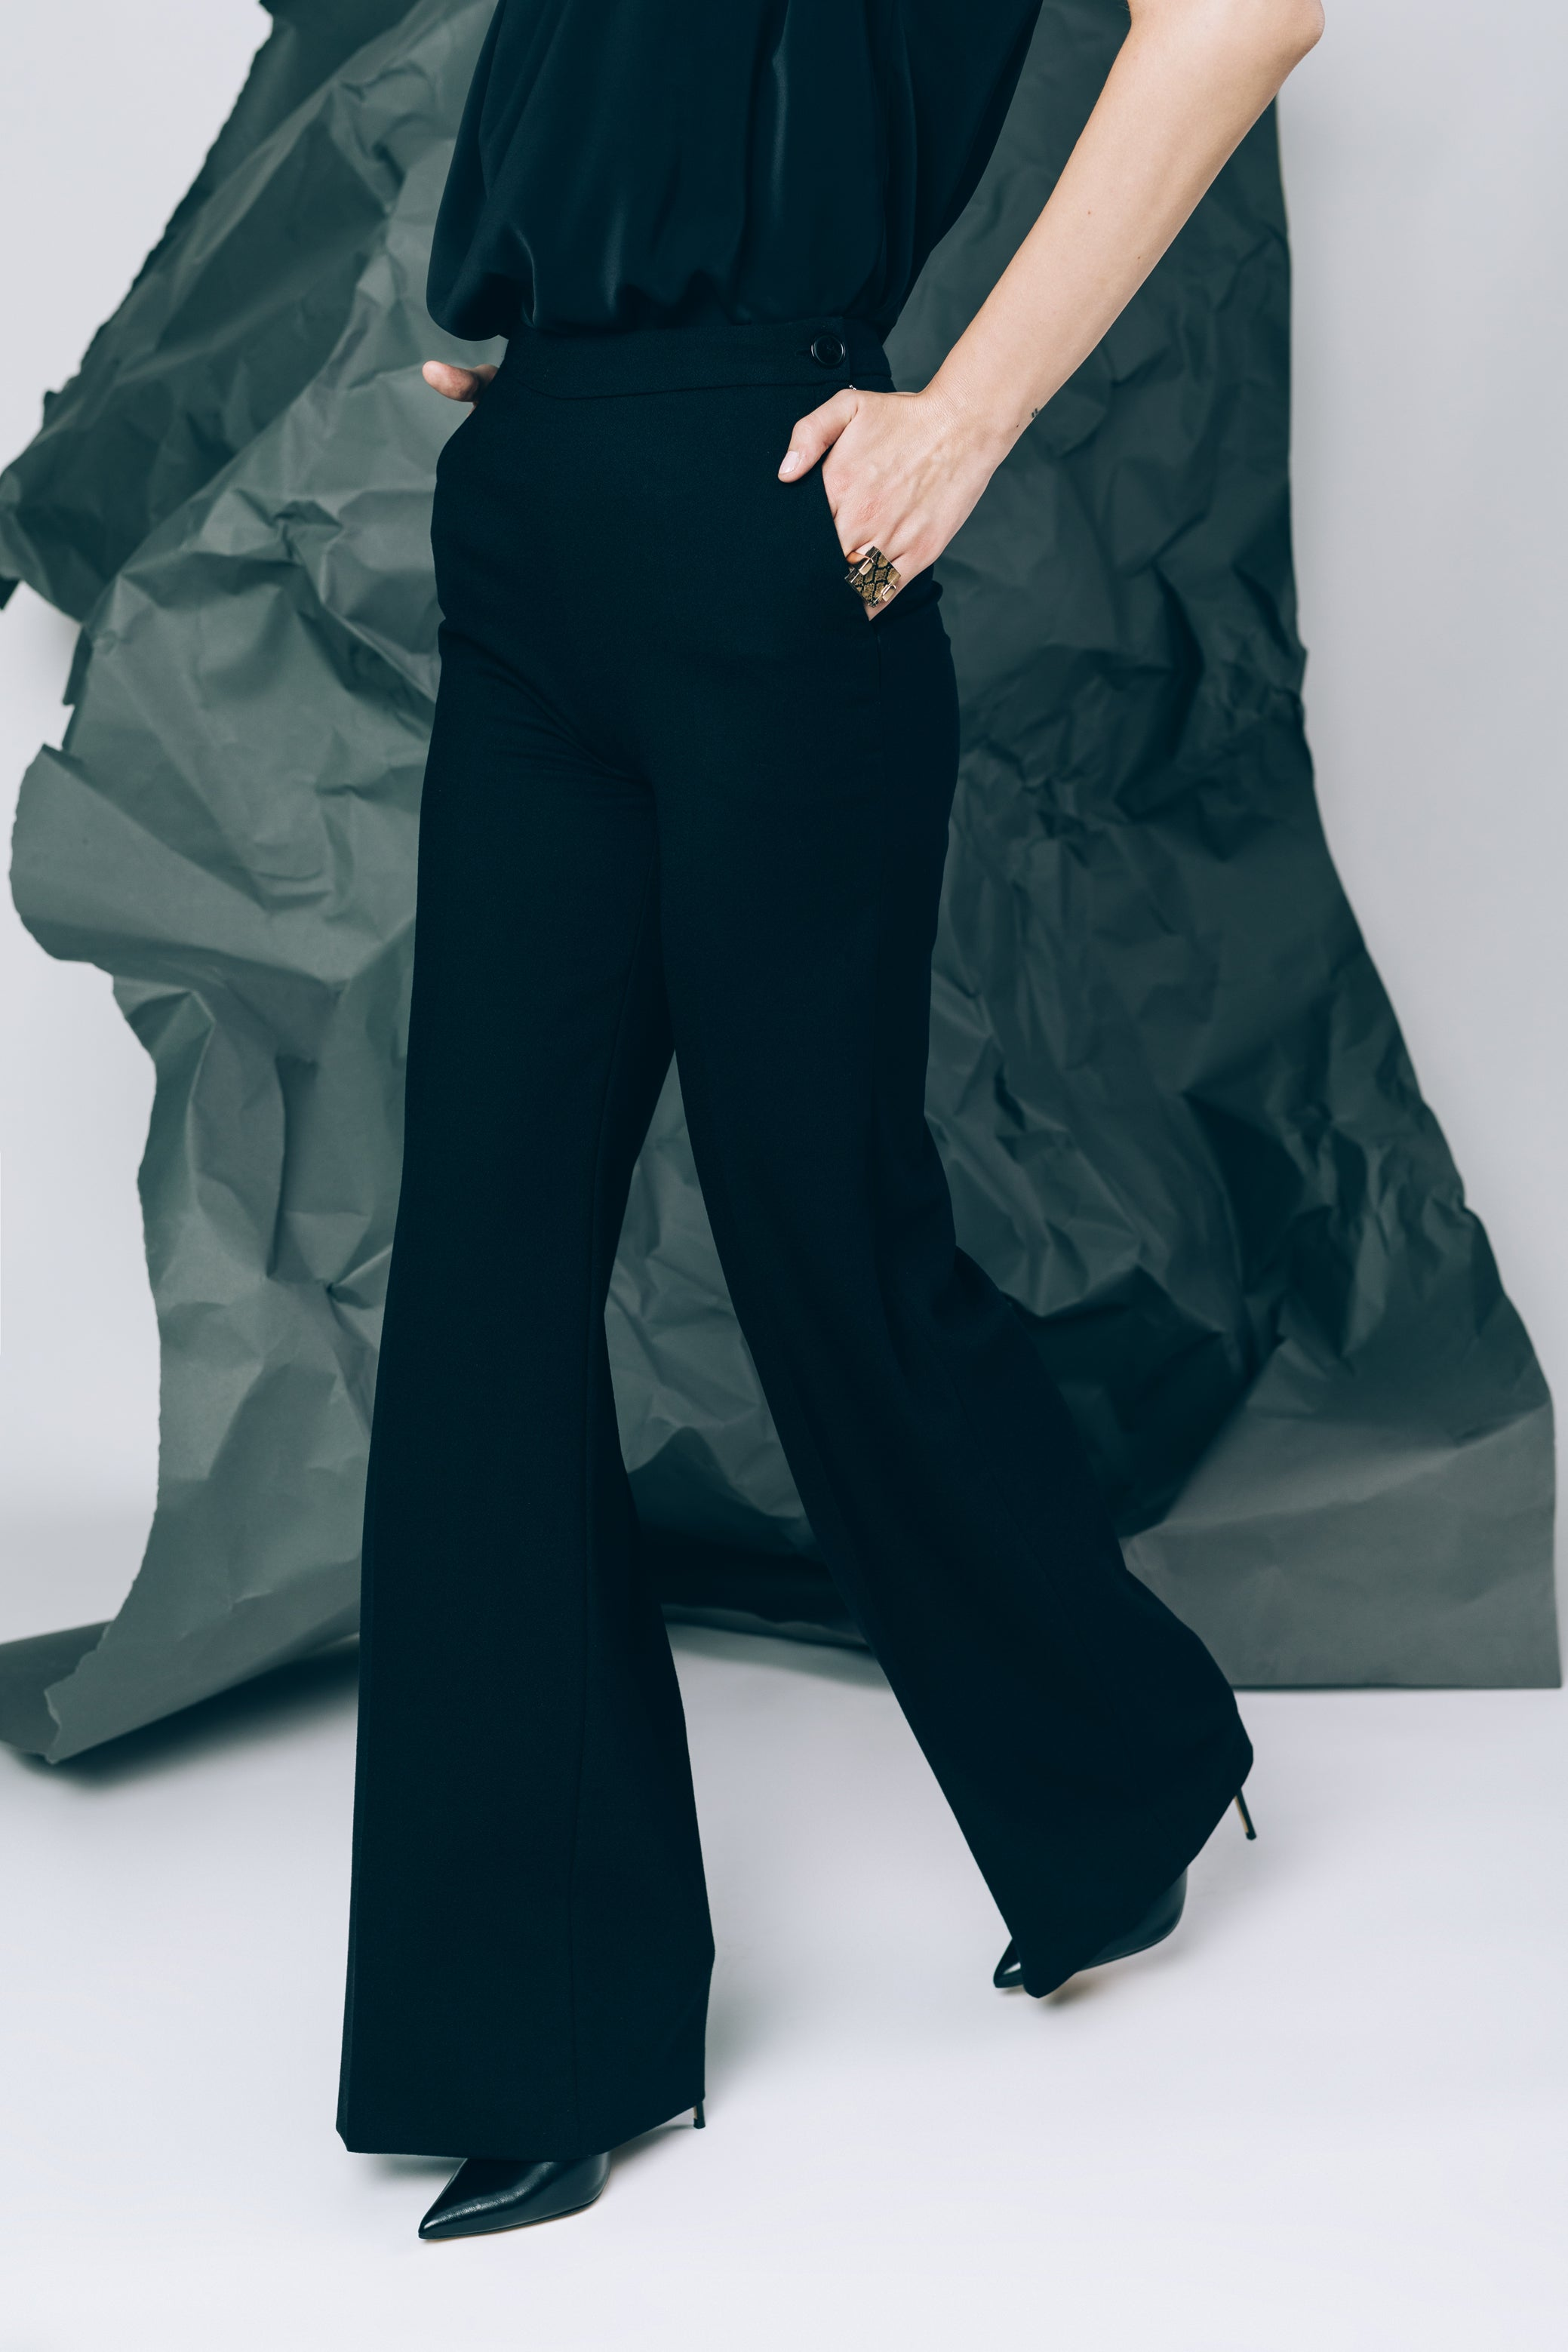 Black high-waist wide leg trousers with side pockets